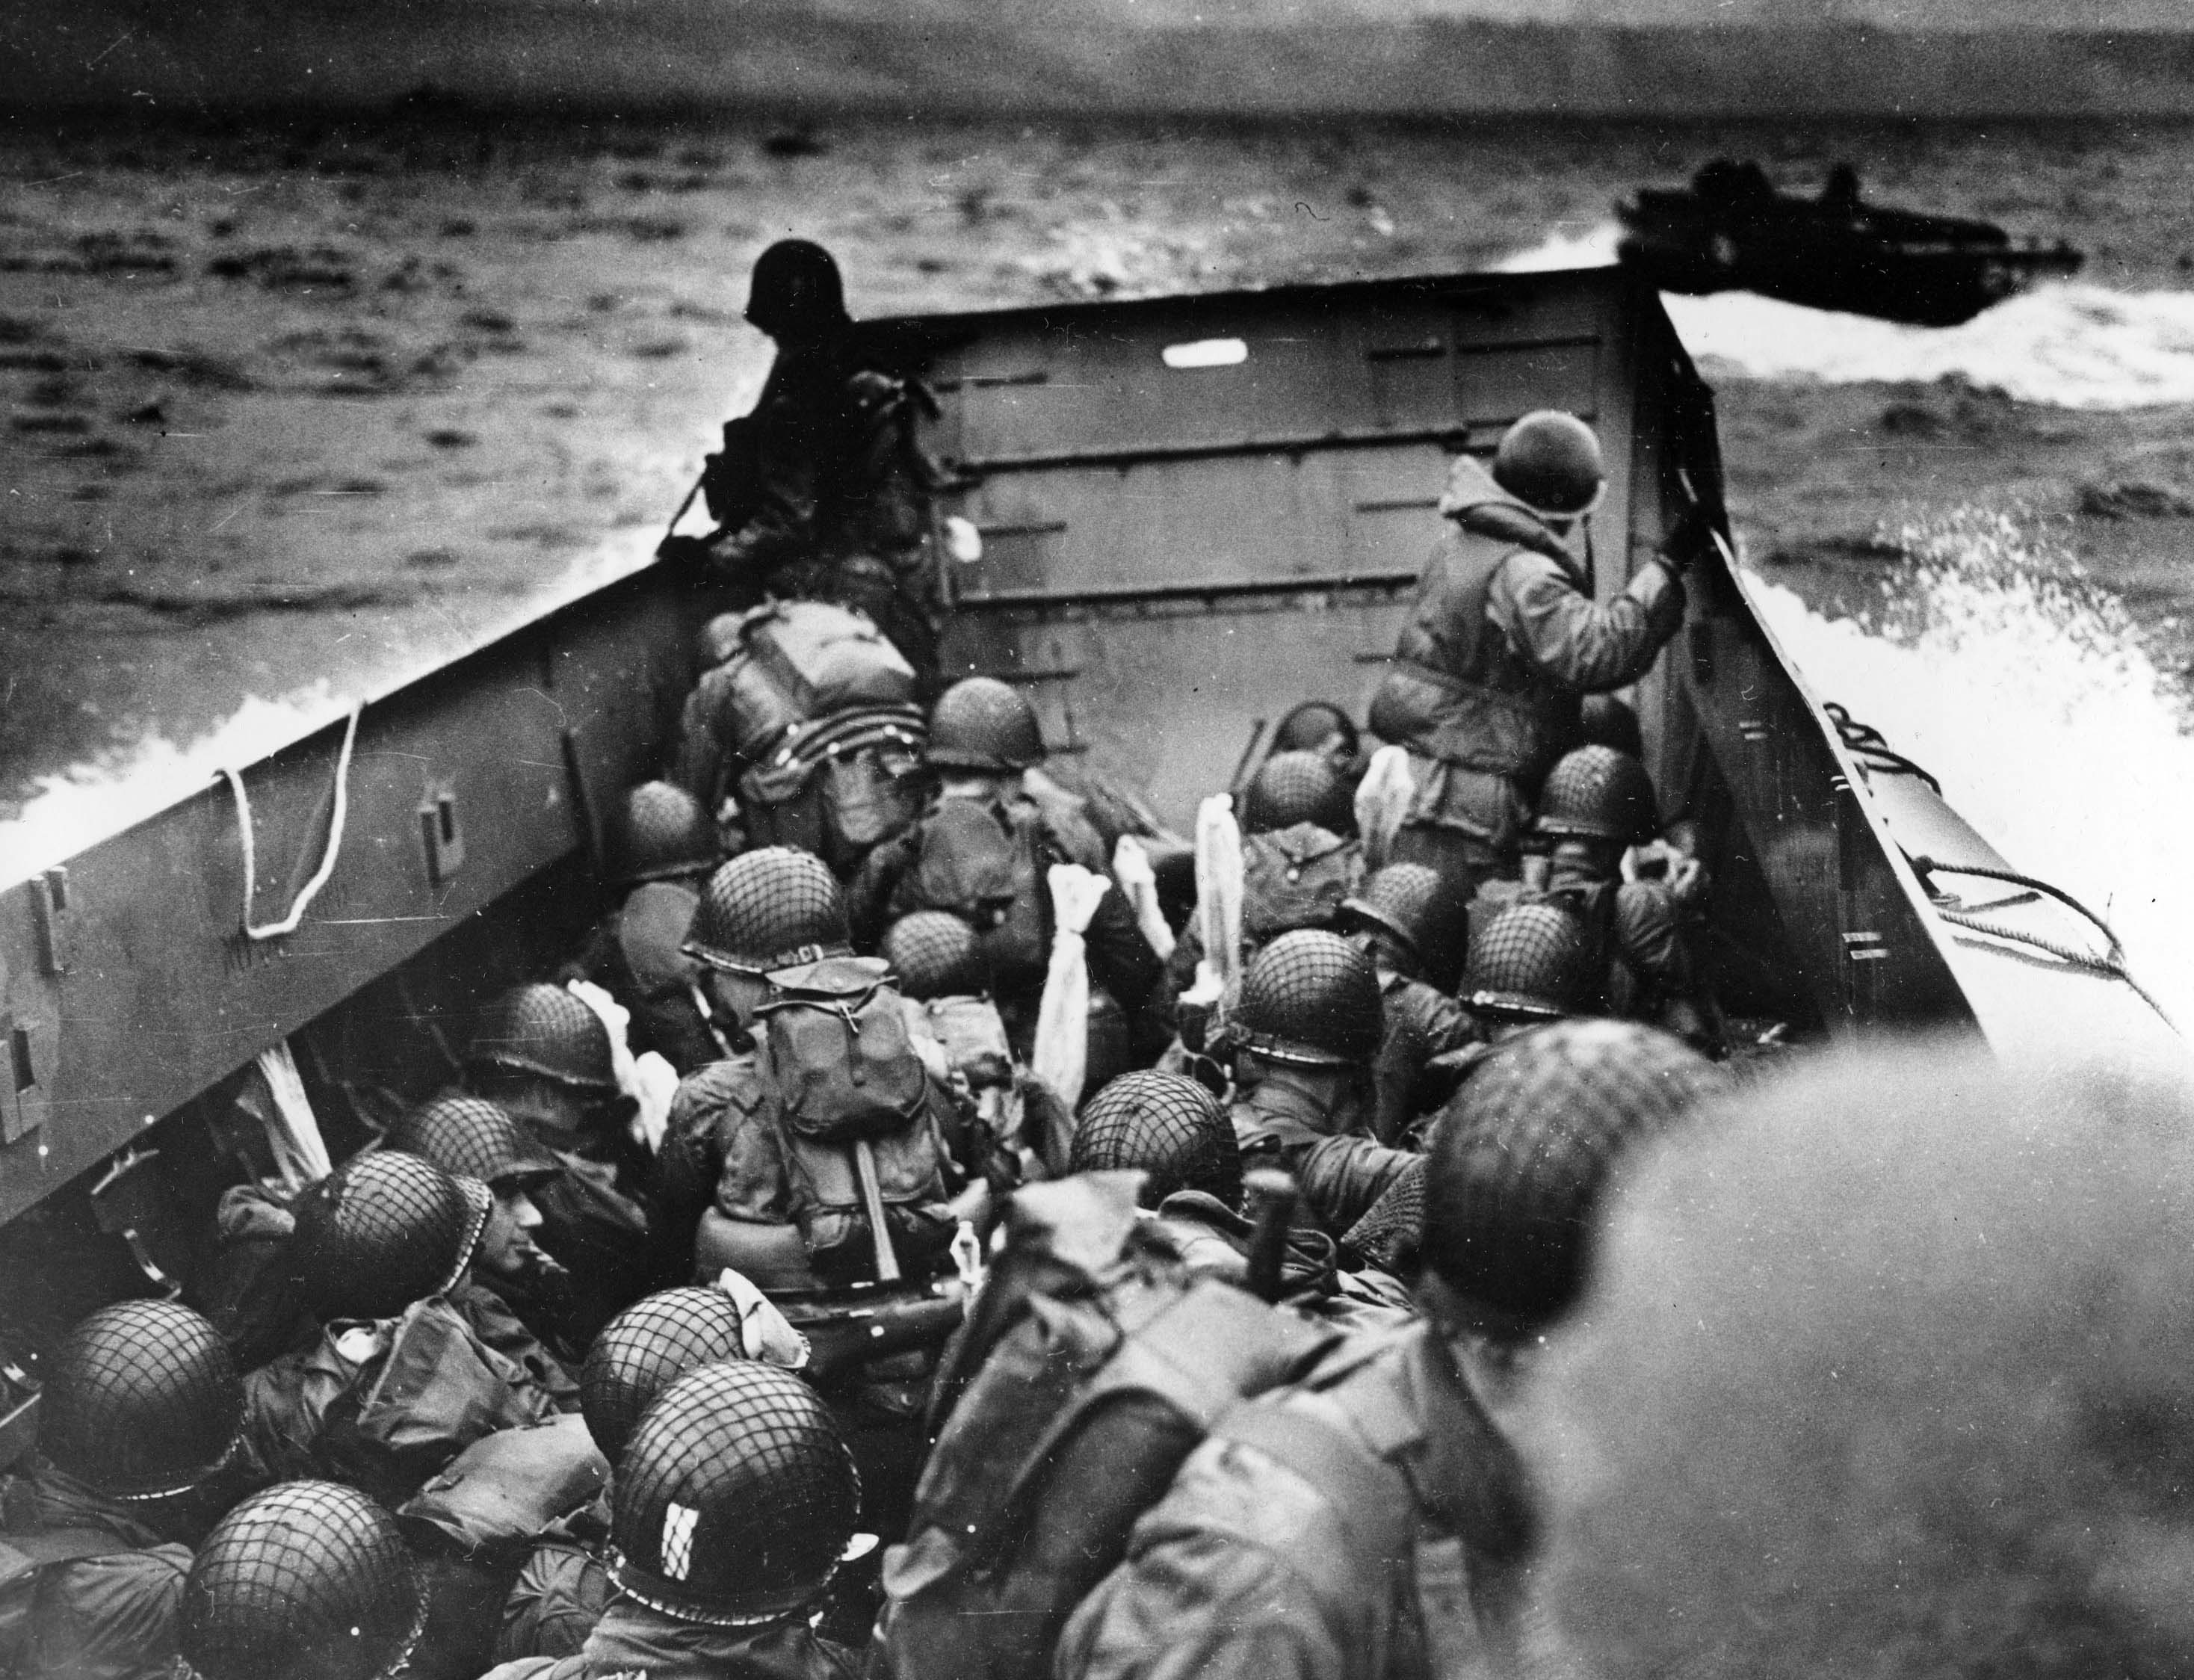 the d day Define d-day: a day set for launching an operation specifically : june 6, 1944, on which allied forces began the invasion of france in world war ii.